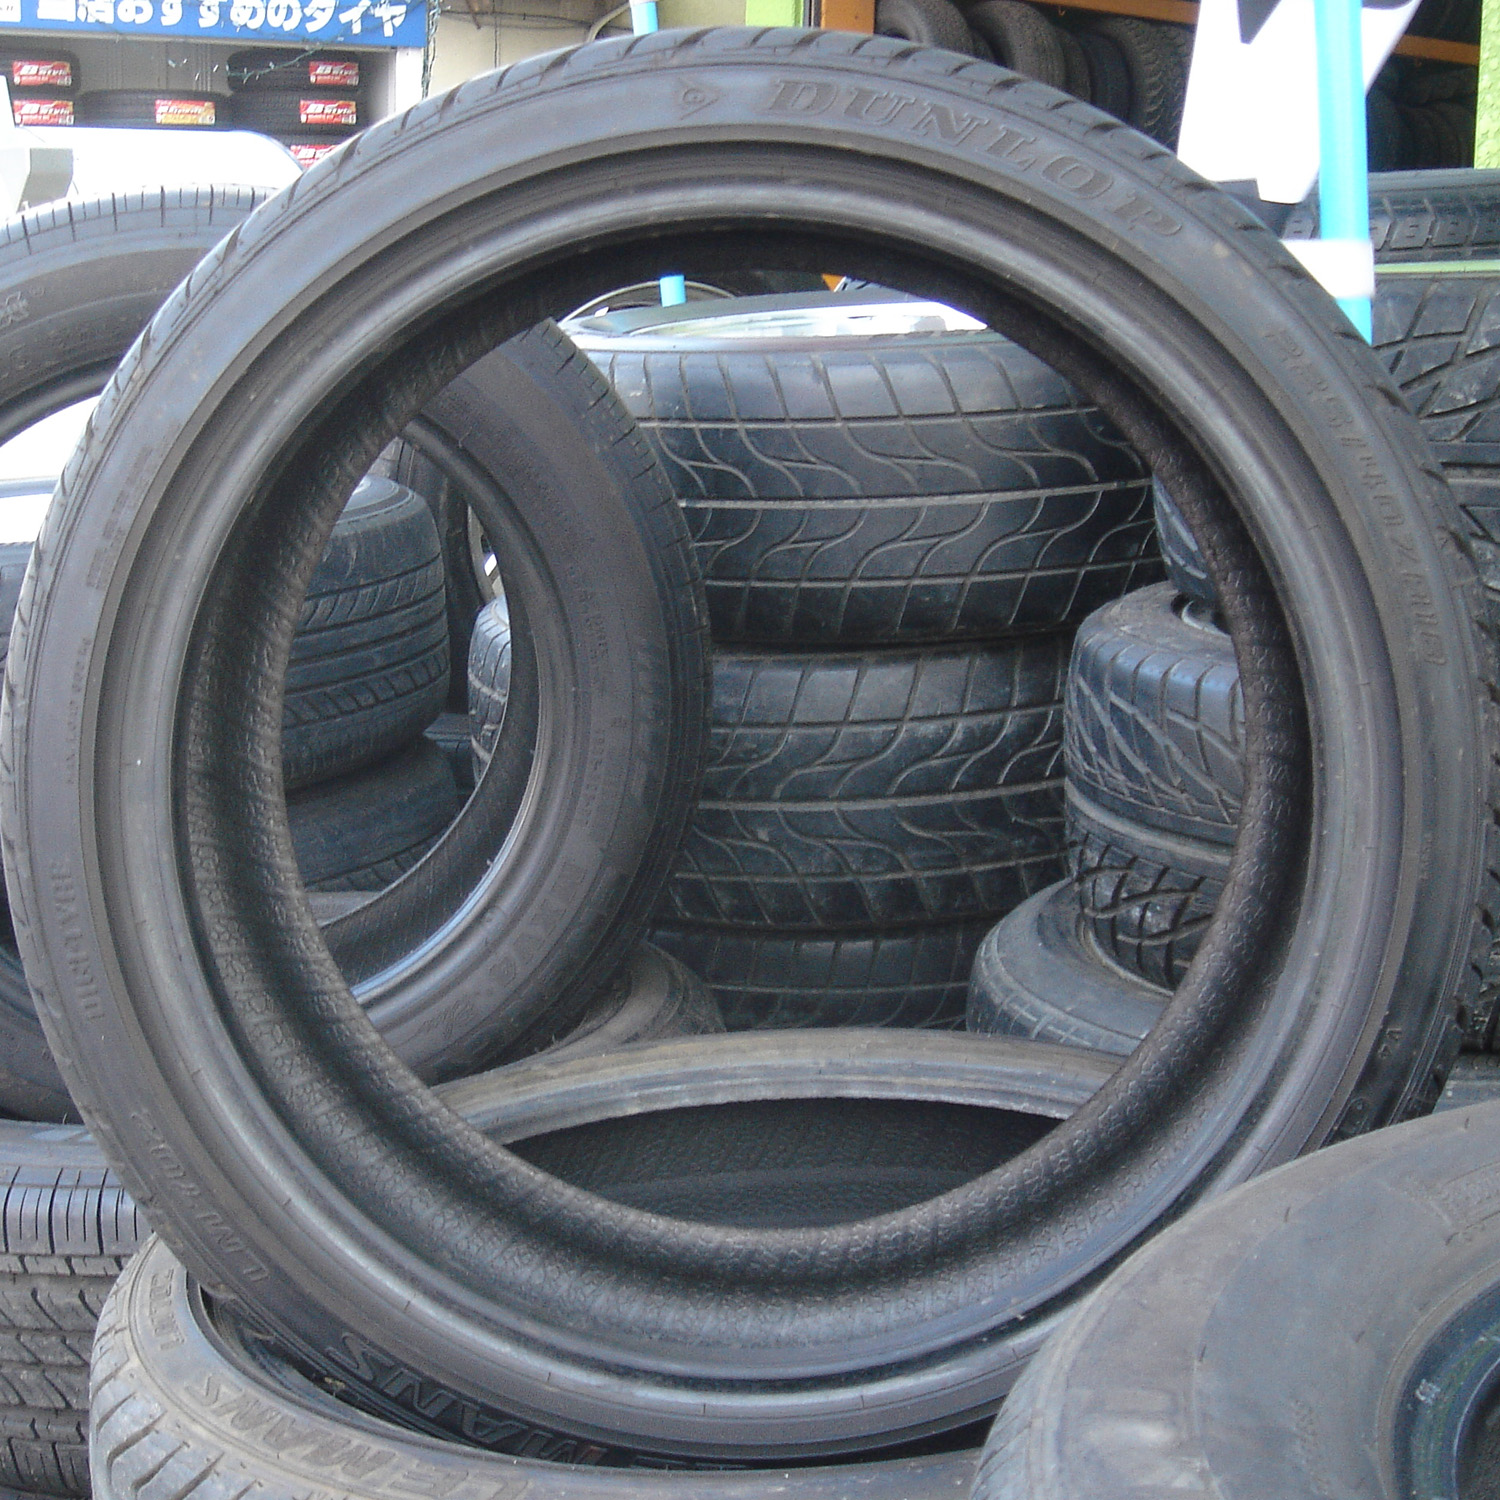 Run Flat Tire Wikipedia >> Outline Of Tires Wikipedia